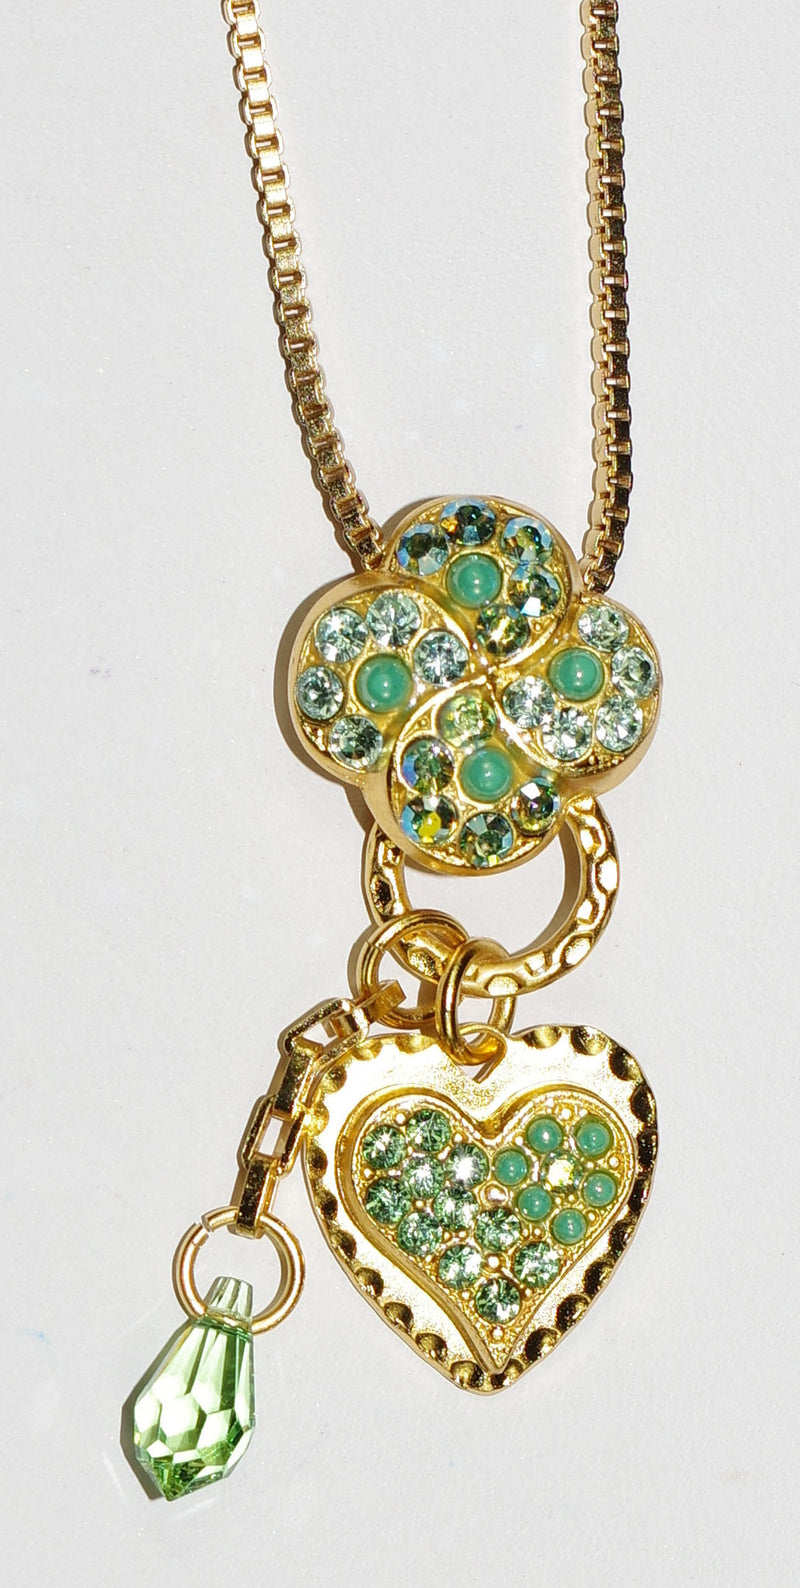 "MARIANA PENDANT OASIS: green, a/b stones in yellow gold setting, 2"" charm, 14"" adjustable chain"